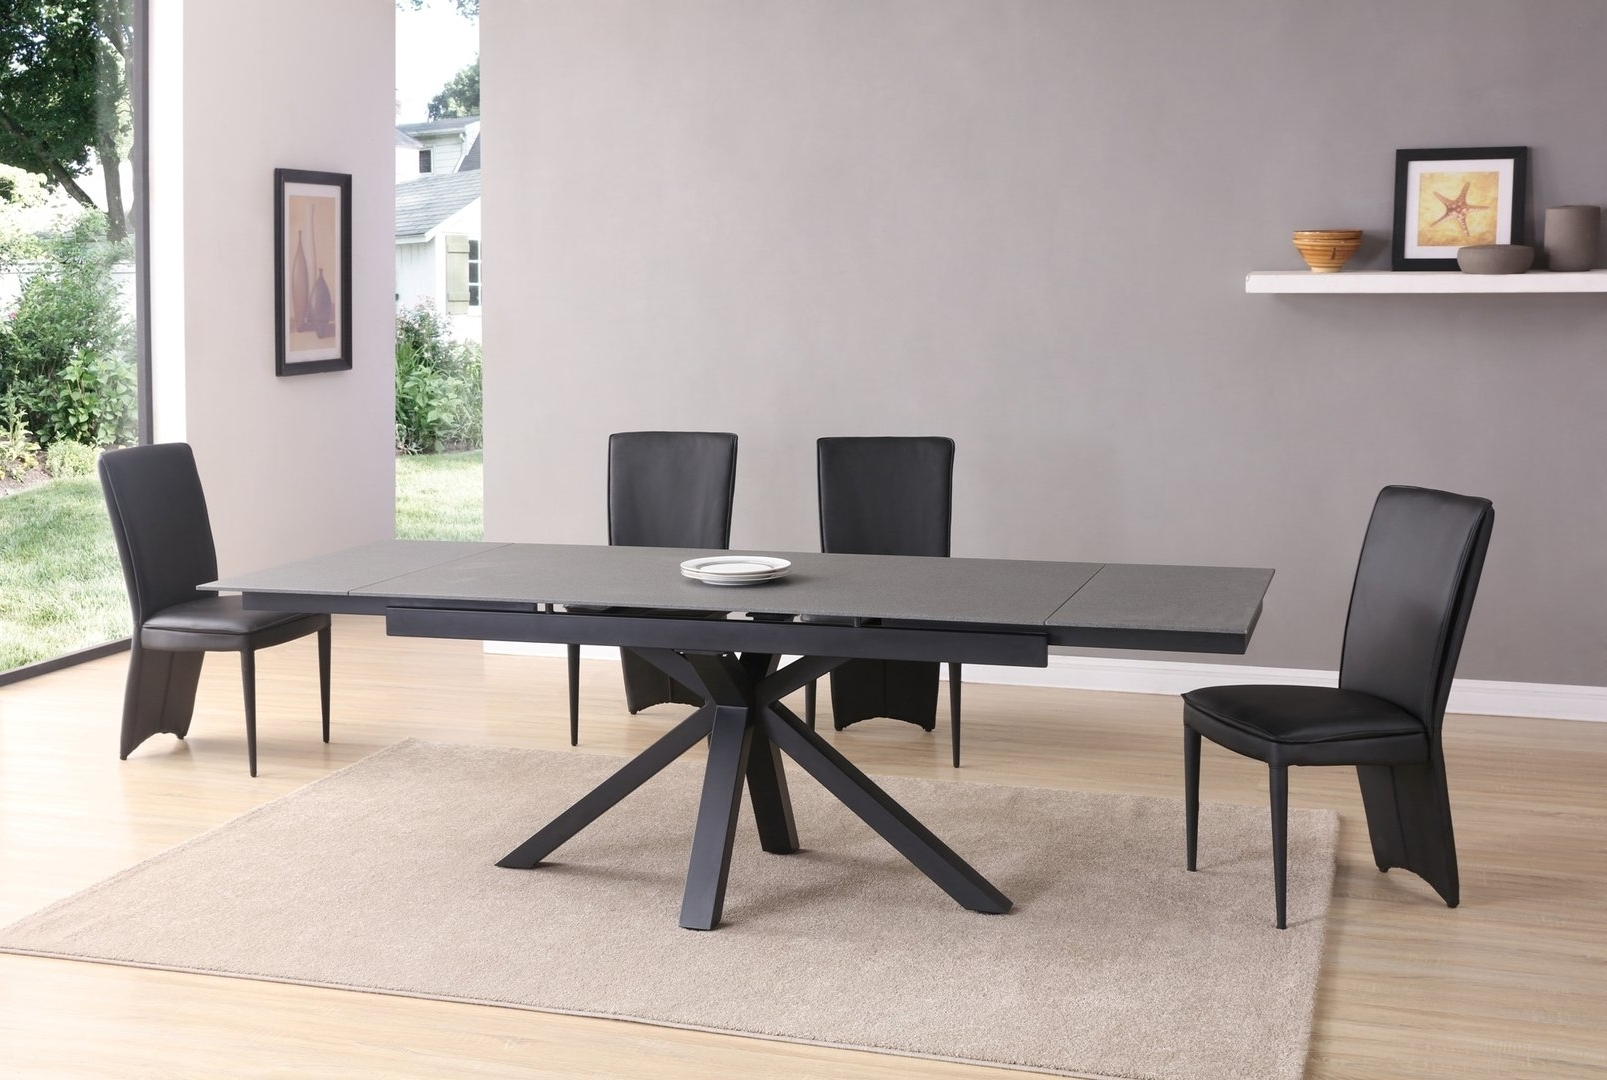 Extending Glass Dining Tables And 8 Chairs throughout Well-known Grey And Black Stone Glass Dining Table And 8 Chairs - Homegenies